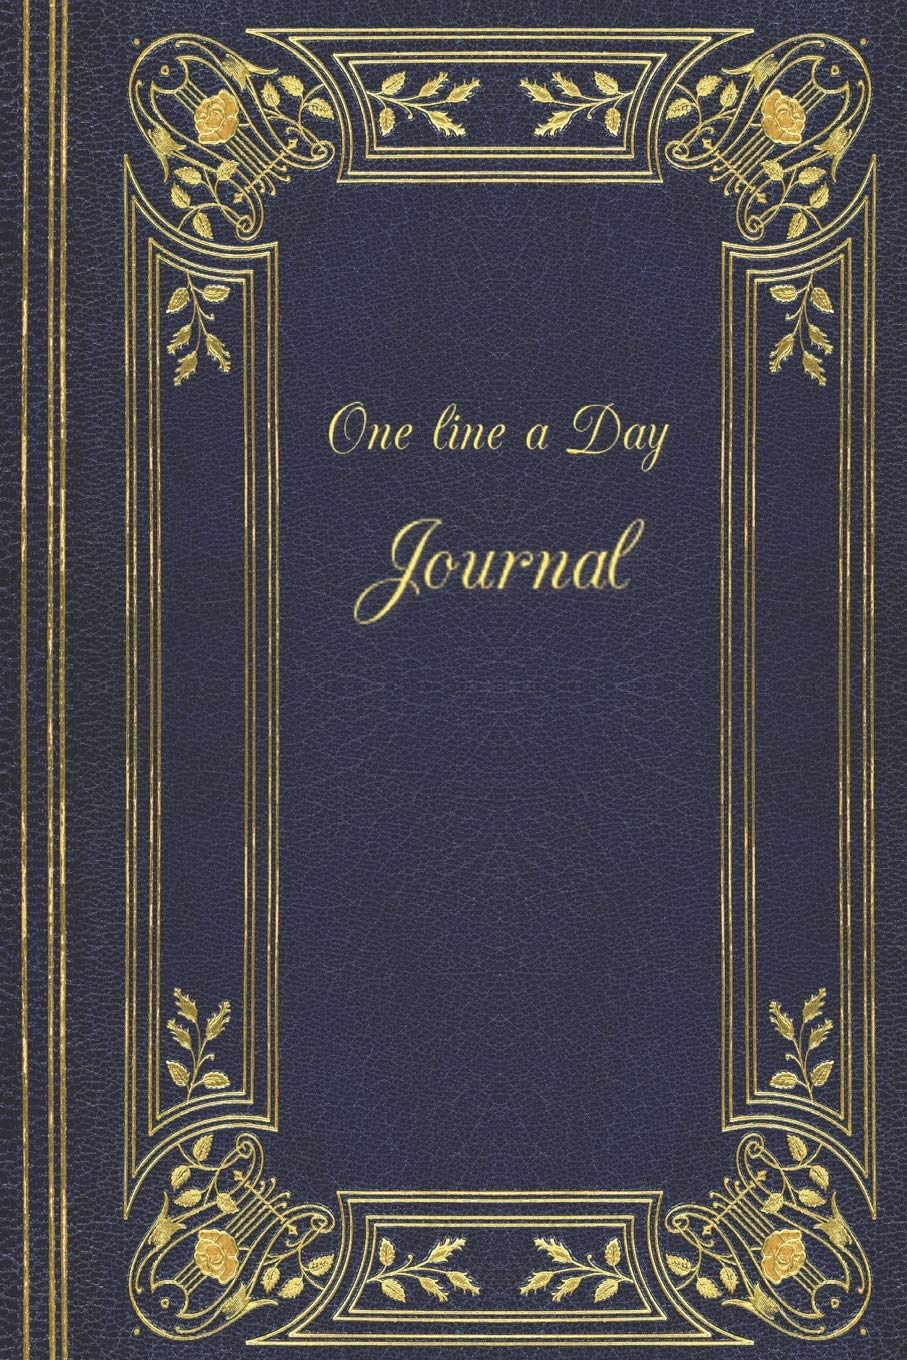 One Line A Day Journal  Decorative One Line A Day Journal Five Year Memory Book Diary Notebook Lined Blank Pages